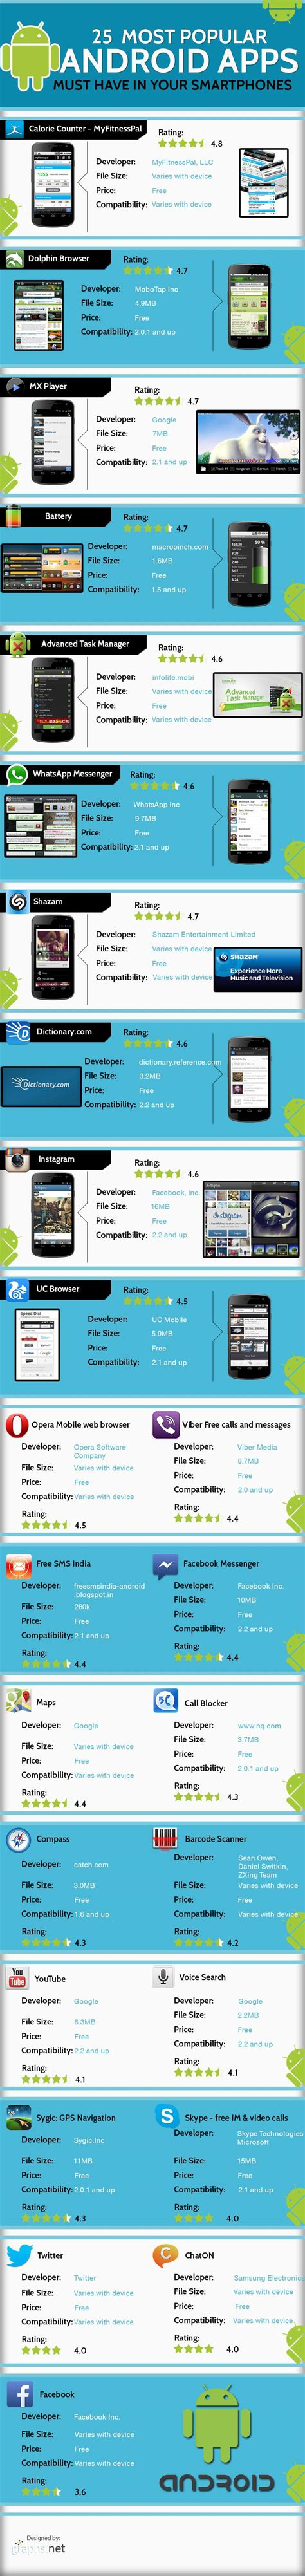 best free android apps 25 most popular best free android apps for your smartphone